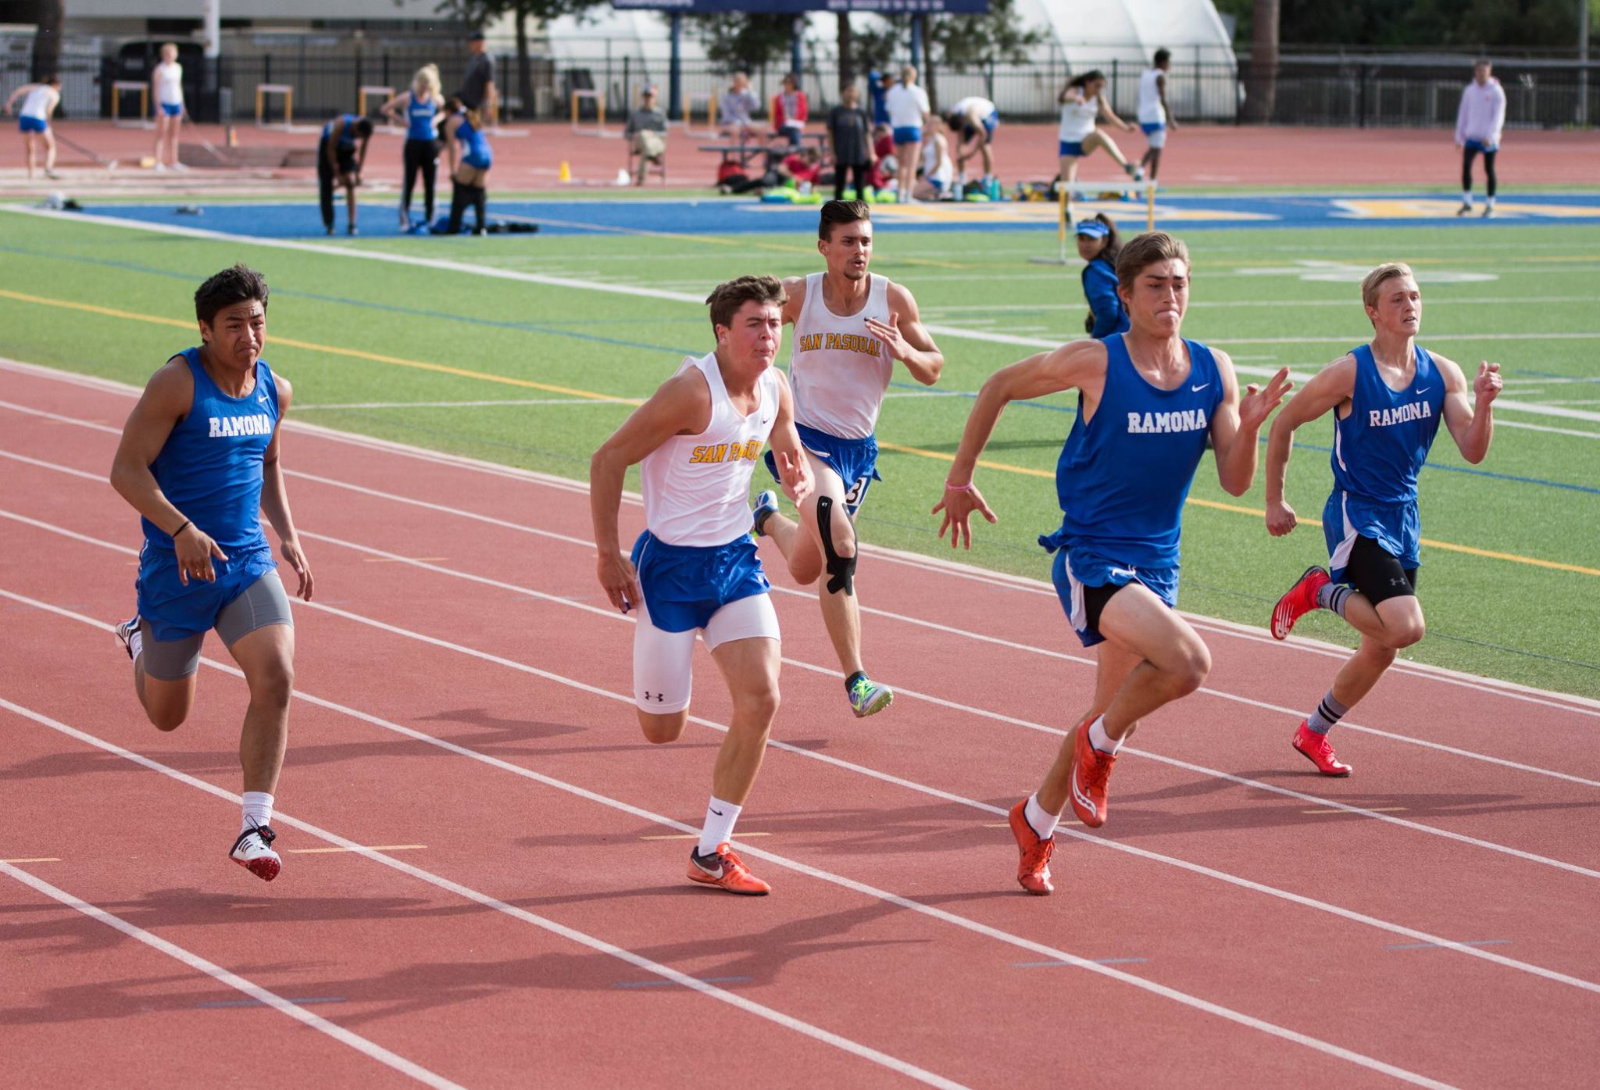 Track & Field HOME meet today at 3:15pm